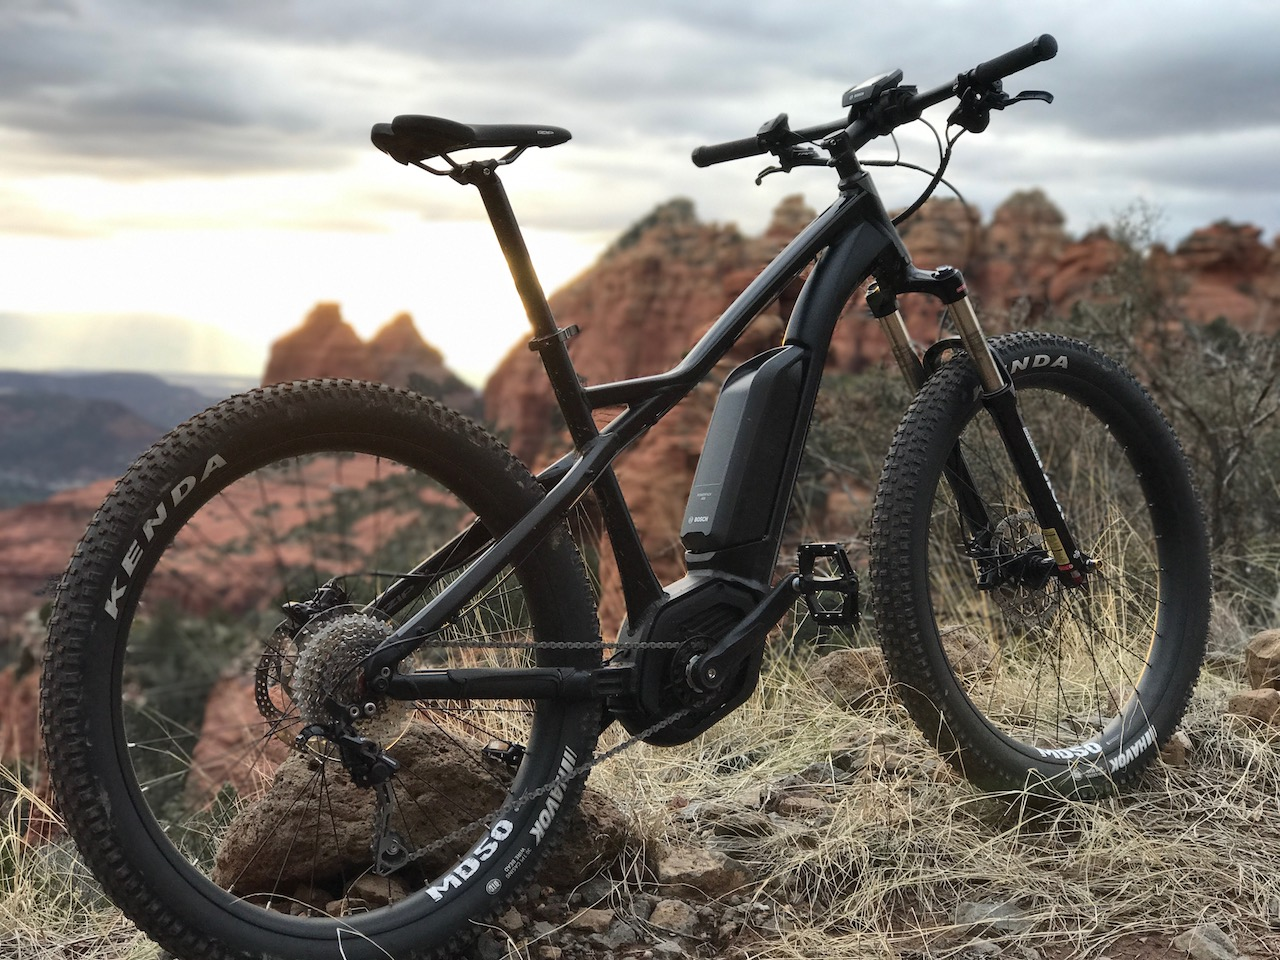 izip-e3-peak-electric-mountain-bike-8